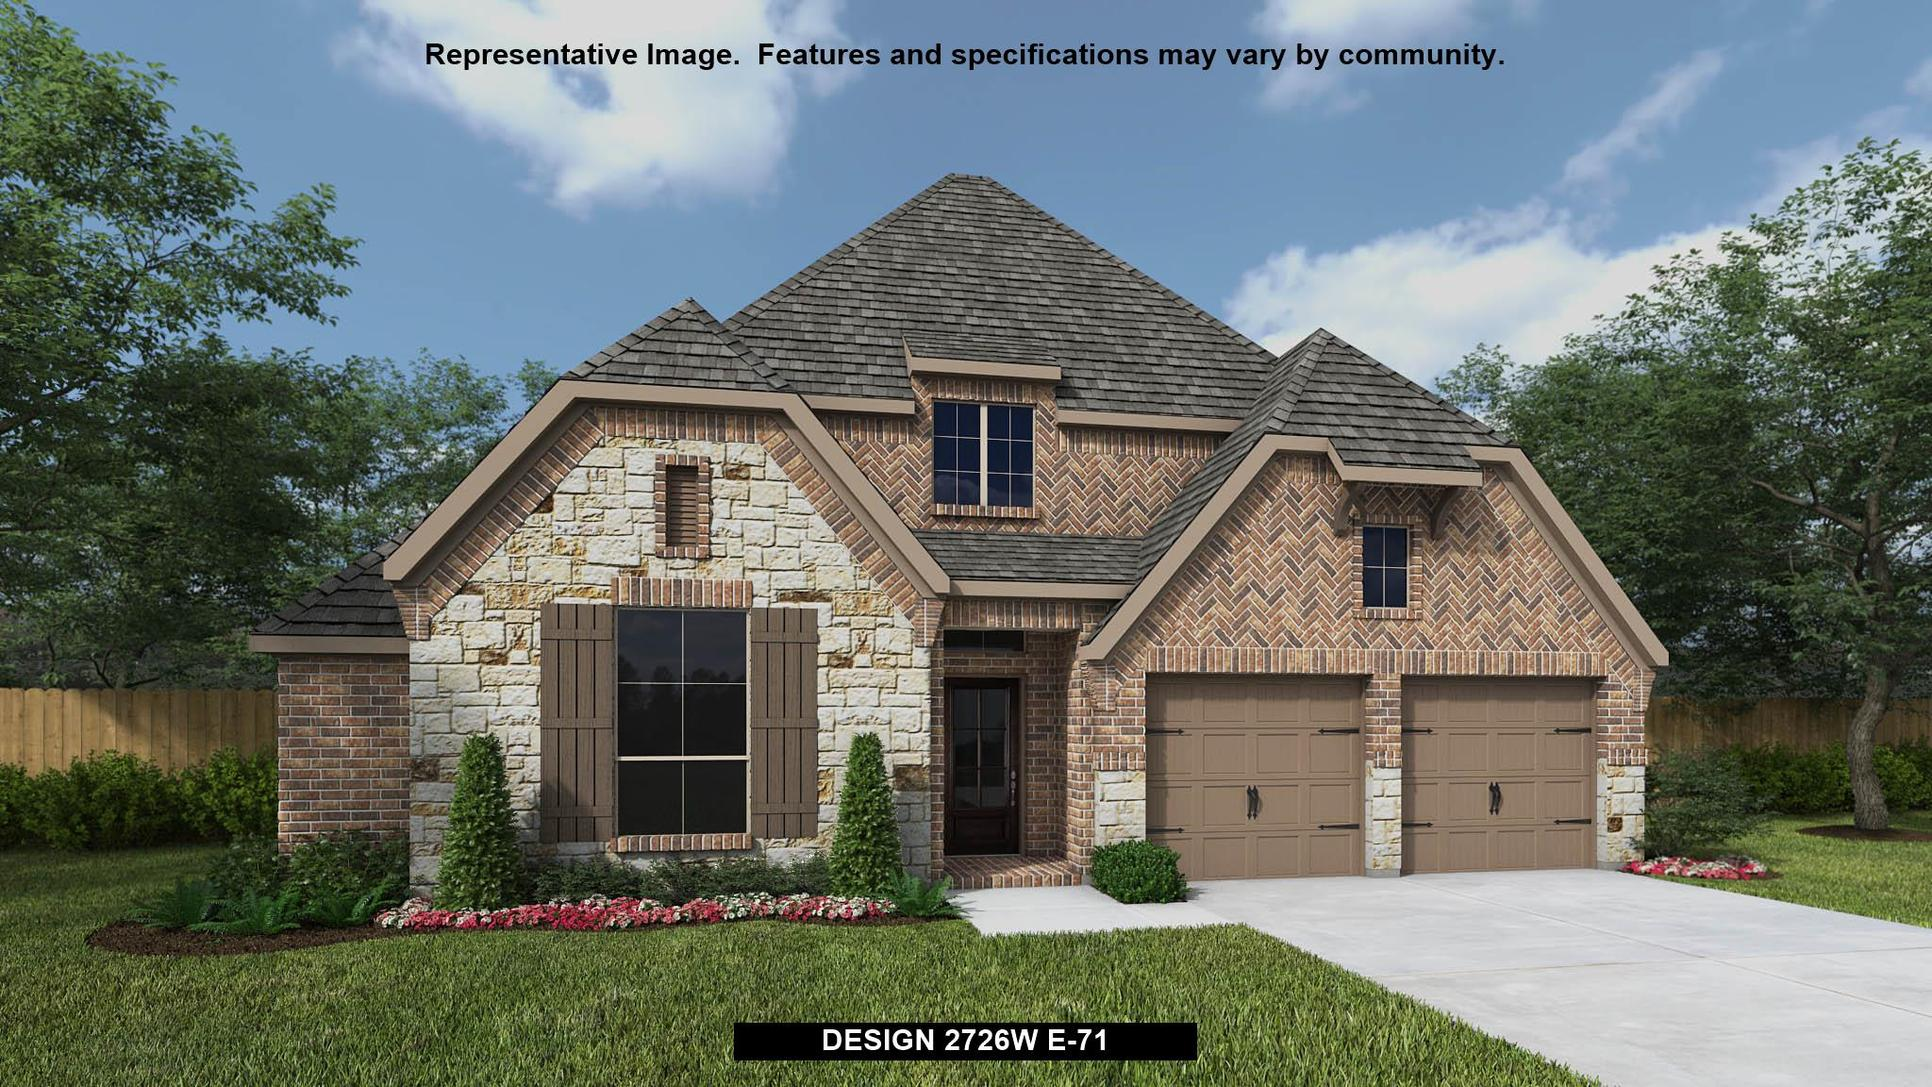 Plan 2726W:Representative photo.  Features and specifications may vary by community.